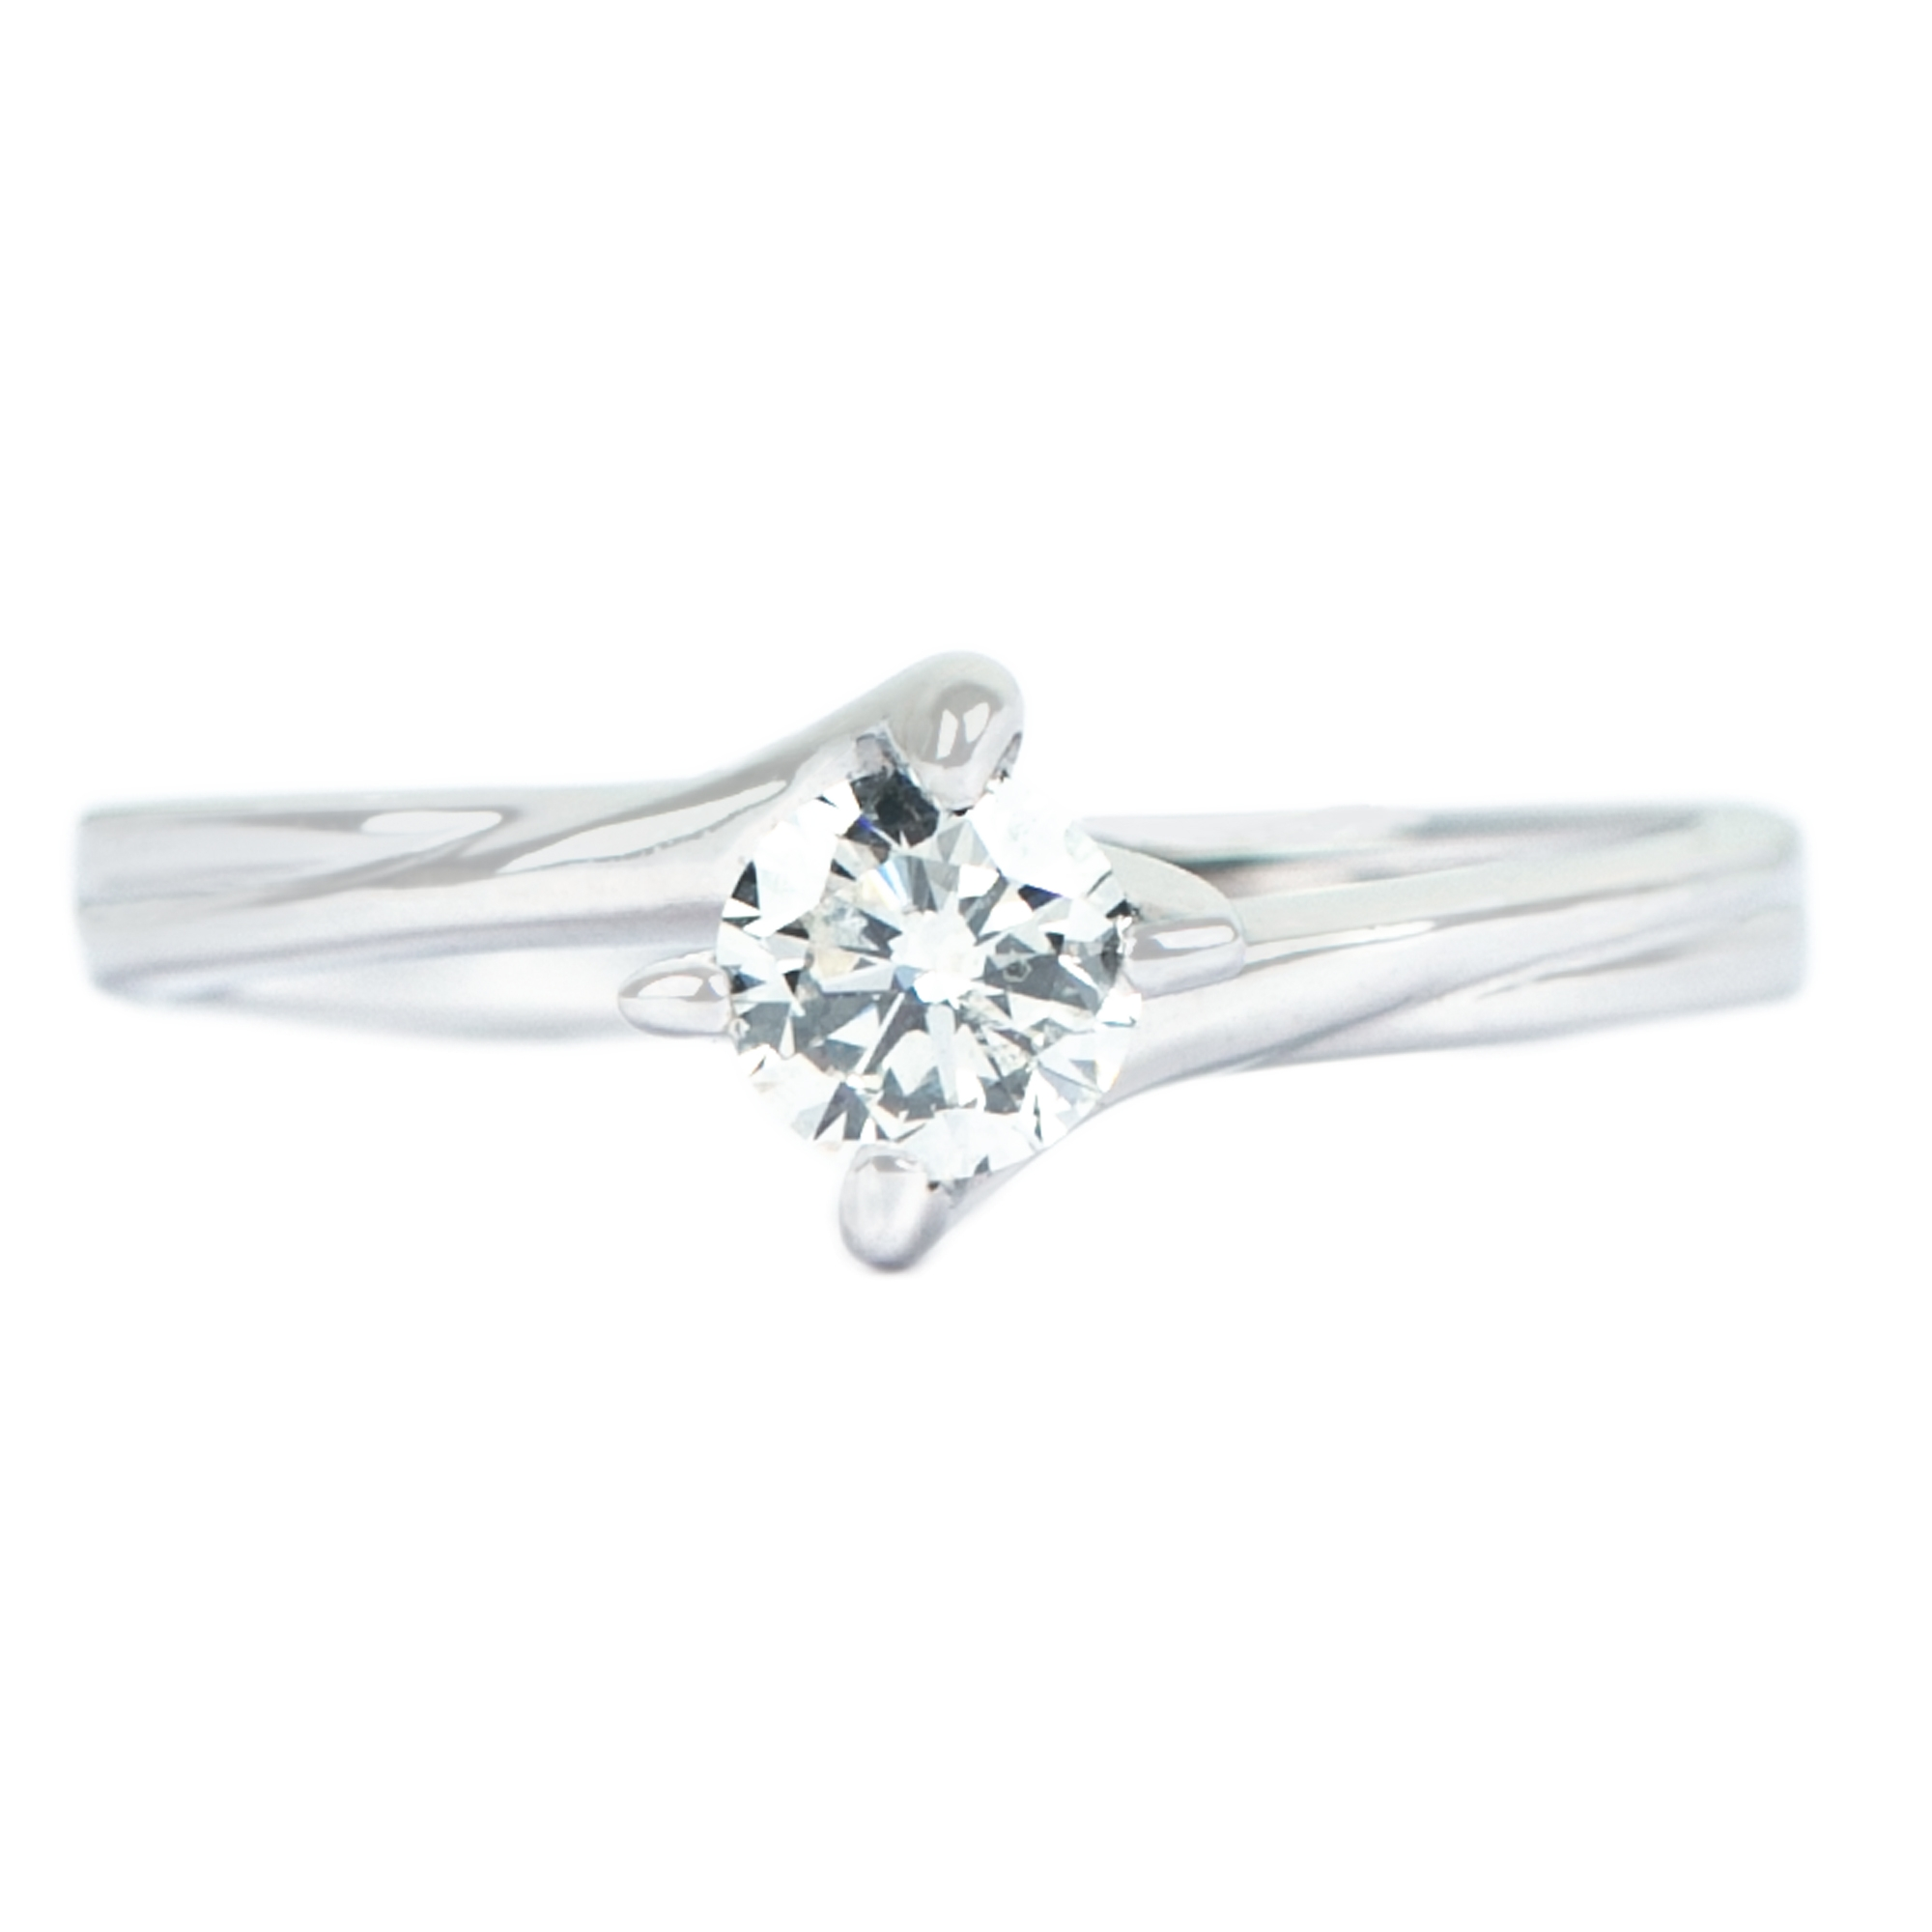 4.50X4.50 MM Round Shape Solitaire Diamond Bypass Engagement Ring in 4 Prong Diagonal Setting